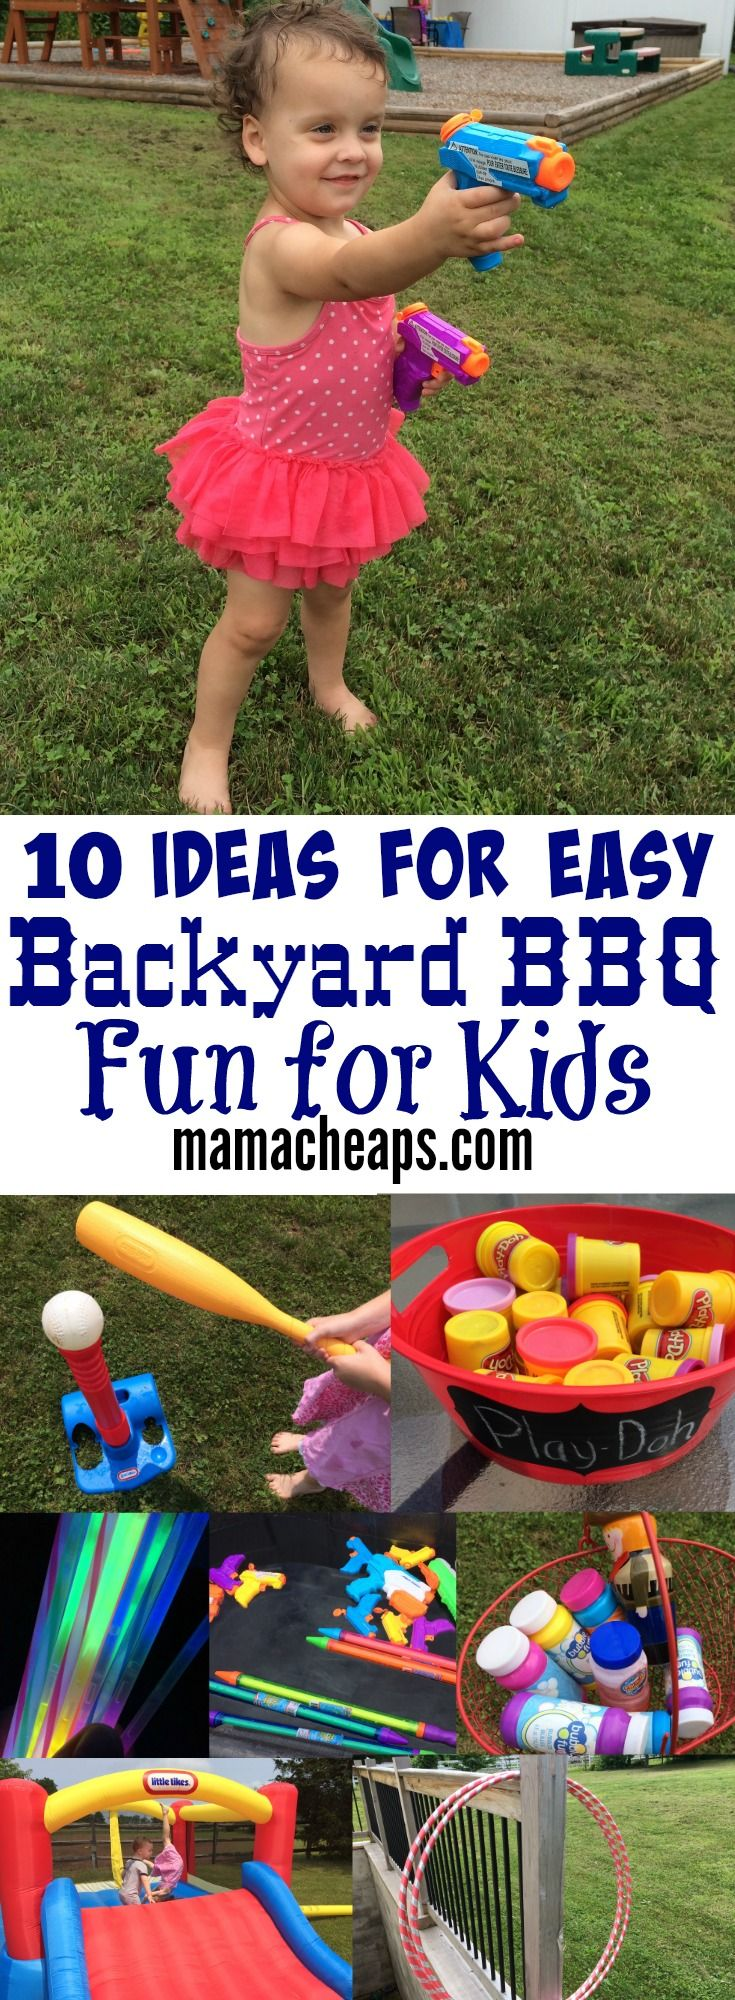 children's birthday party games outdoors